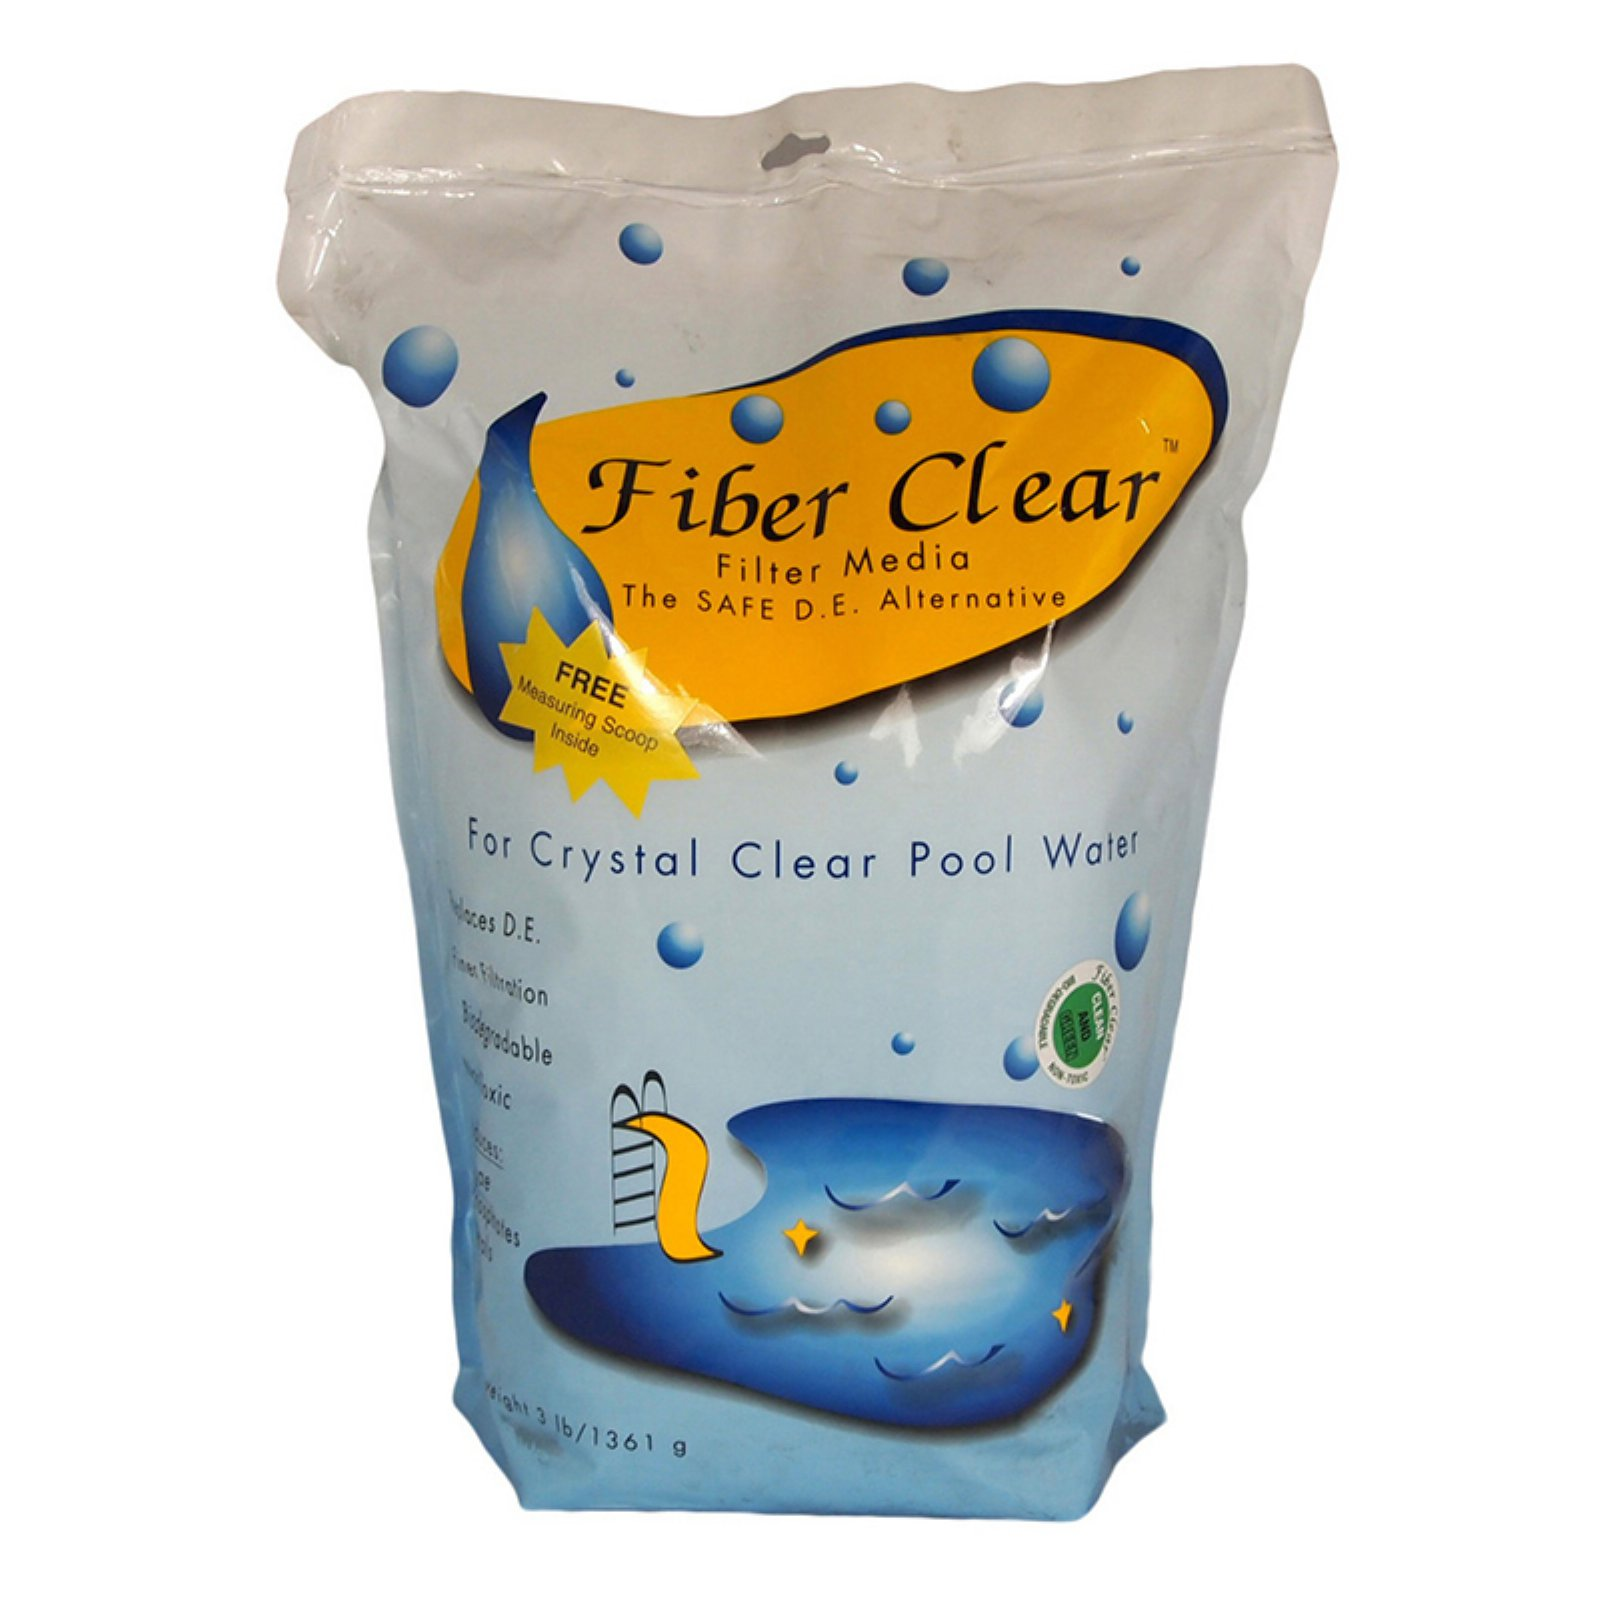 Fiber Clear Cellulose Filter Media D.E. Alternative for Swimming Pools